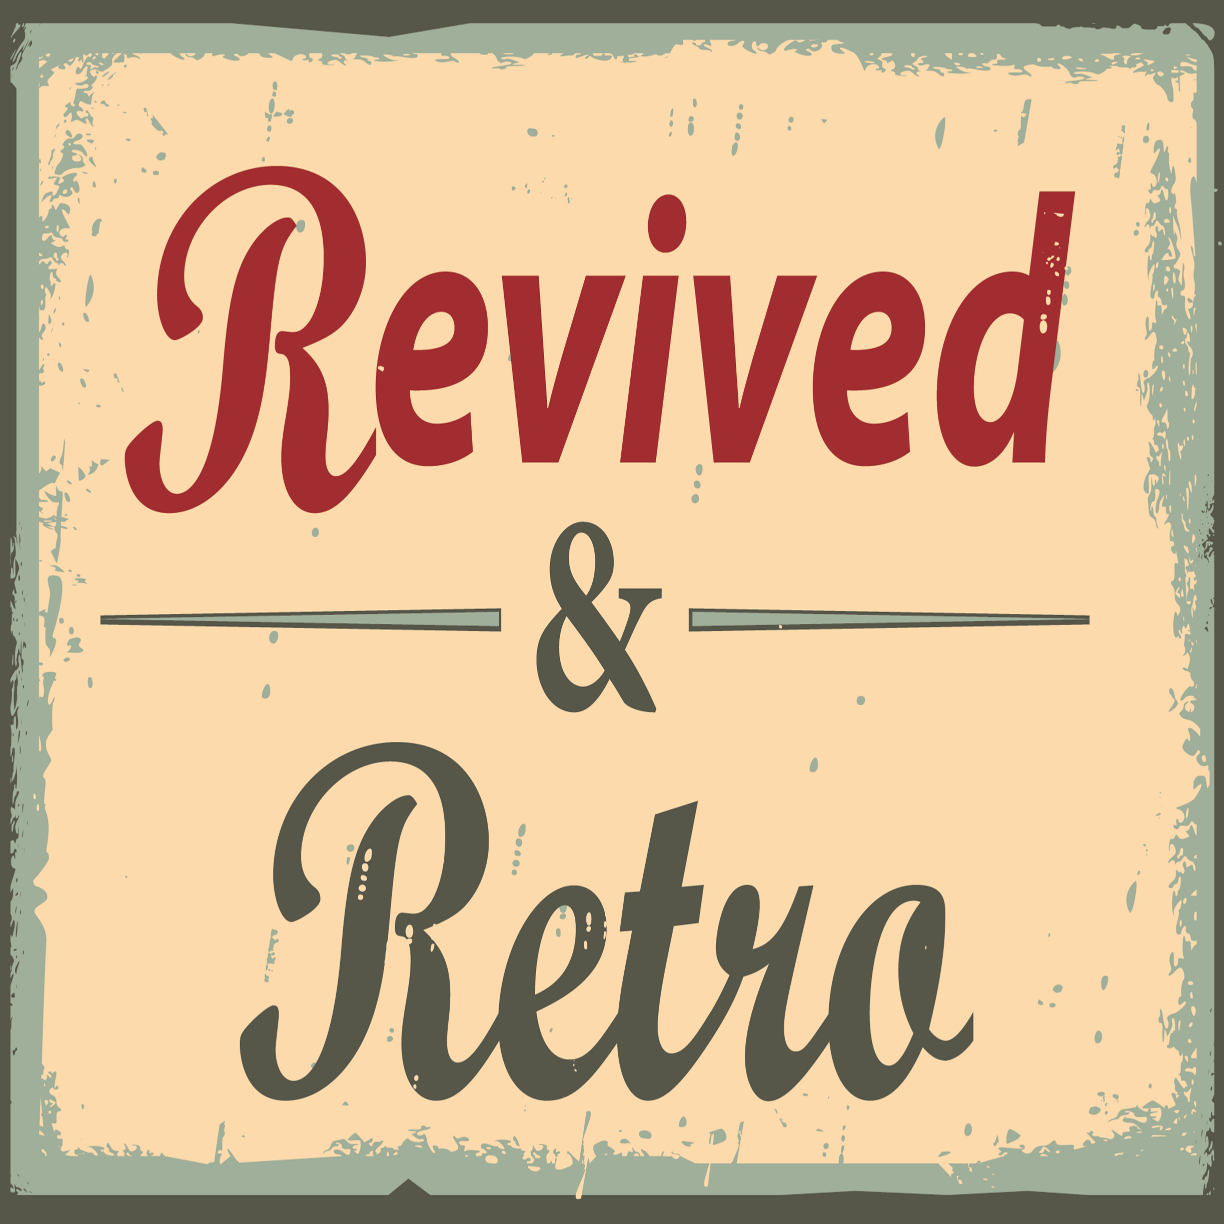 Revived & Retro